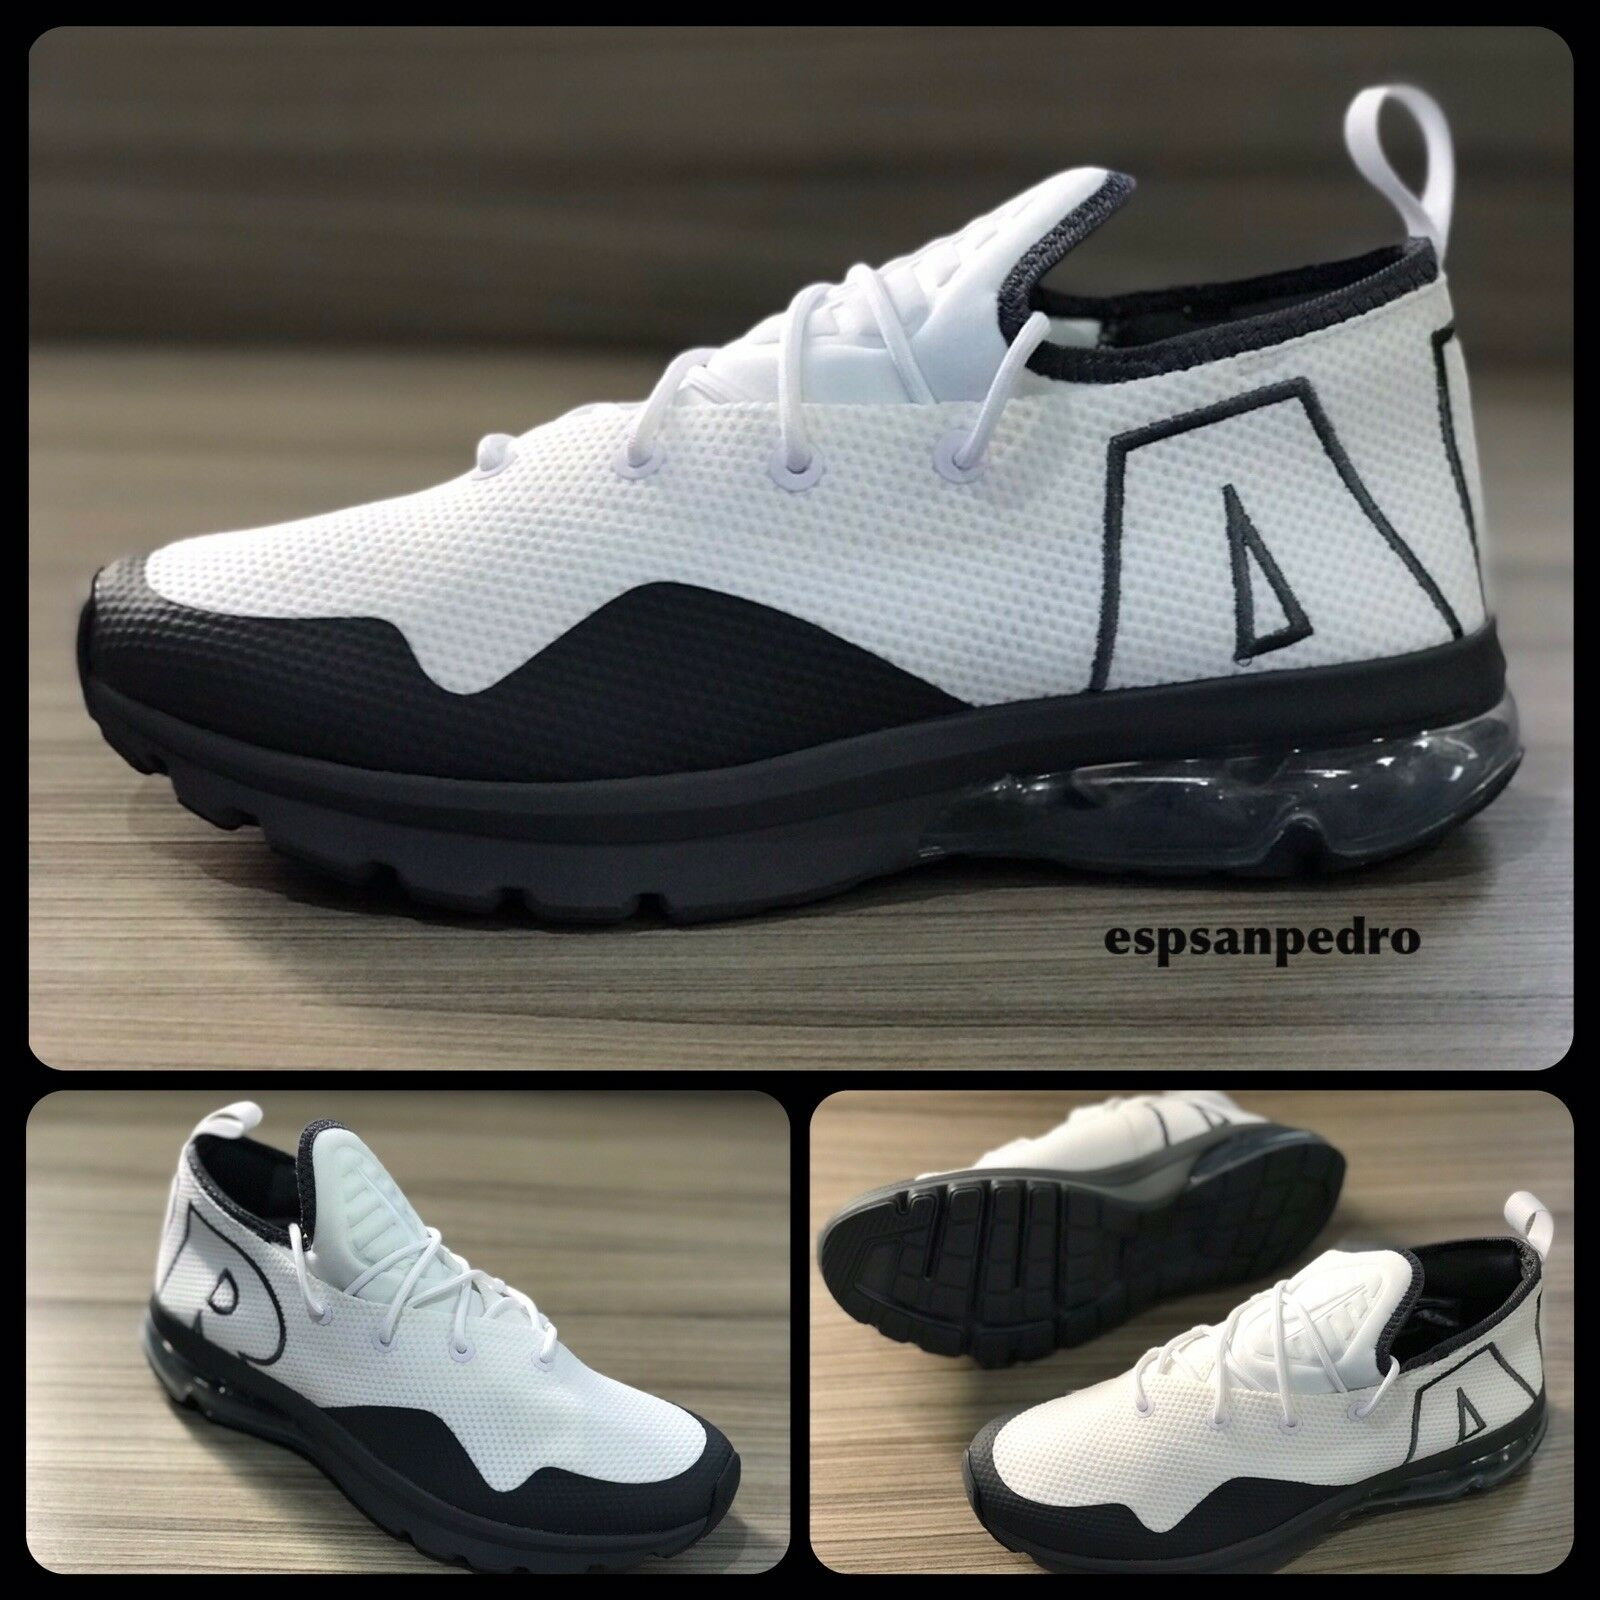 Nike Air Max Flair 50 Homme Baskets Homme 50 Taille UK7.5 EUR 42 [AA3824 100] Authentique e9c3a7